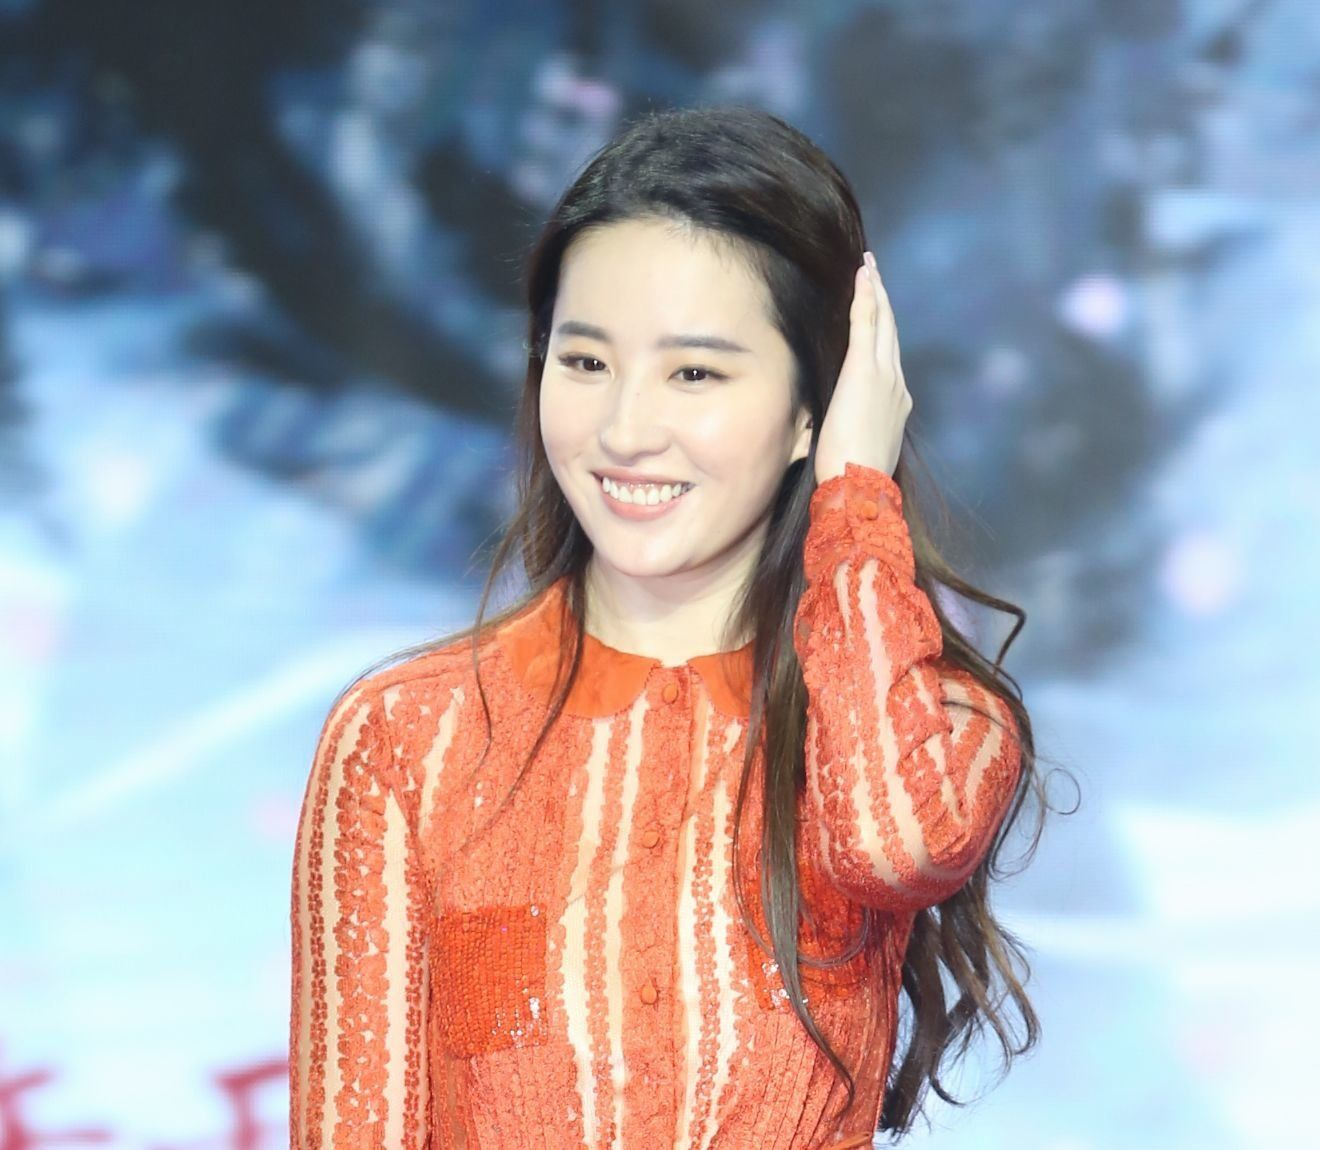 BEIJING, CHINA - AUGUST 03:  Actress Liu Yifei attends the press conference of film 'Once Upon a Time' on August 3, 2017 in Beijing, China.  (Photo by VCG/VCG via Getty Images)